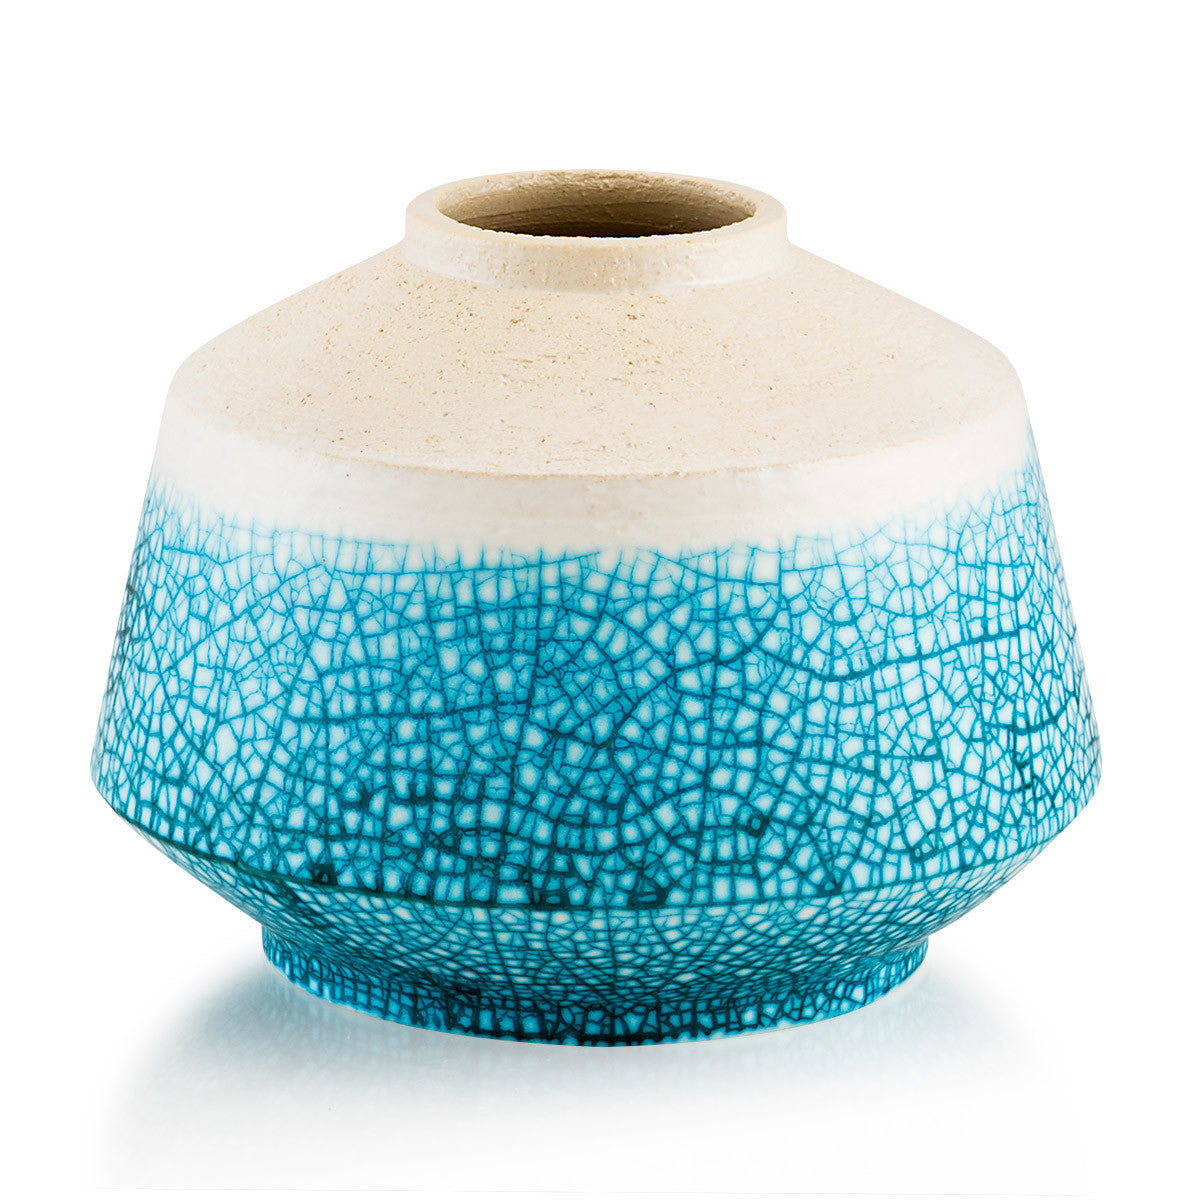 Crackle glaze ceramics, nautical decor, ceramic supplies, top quality